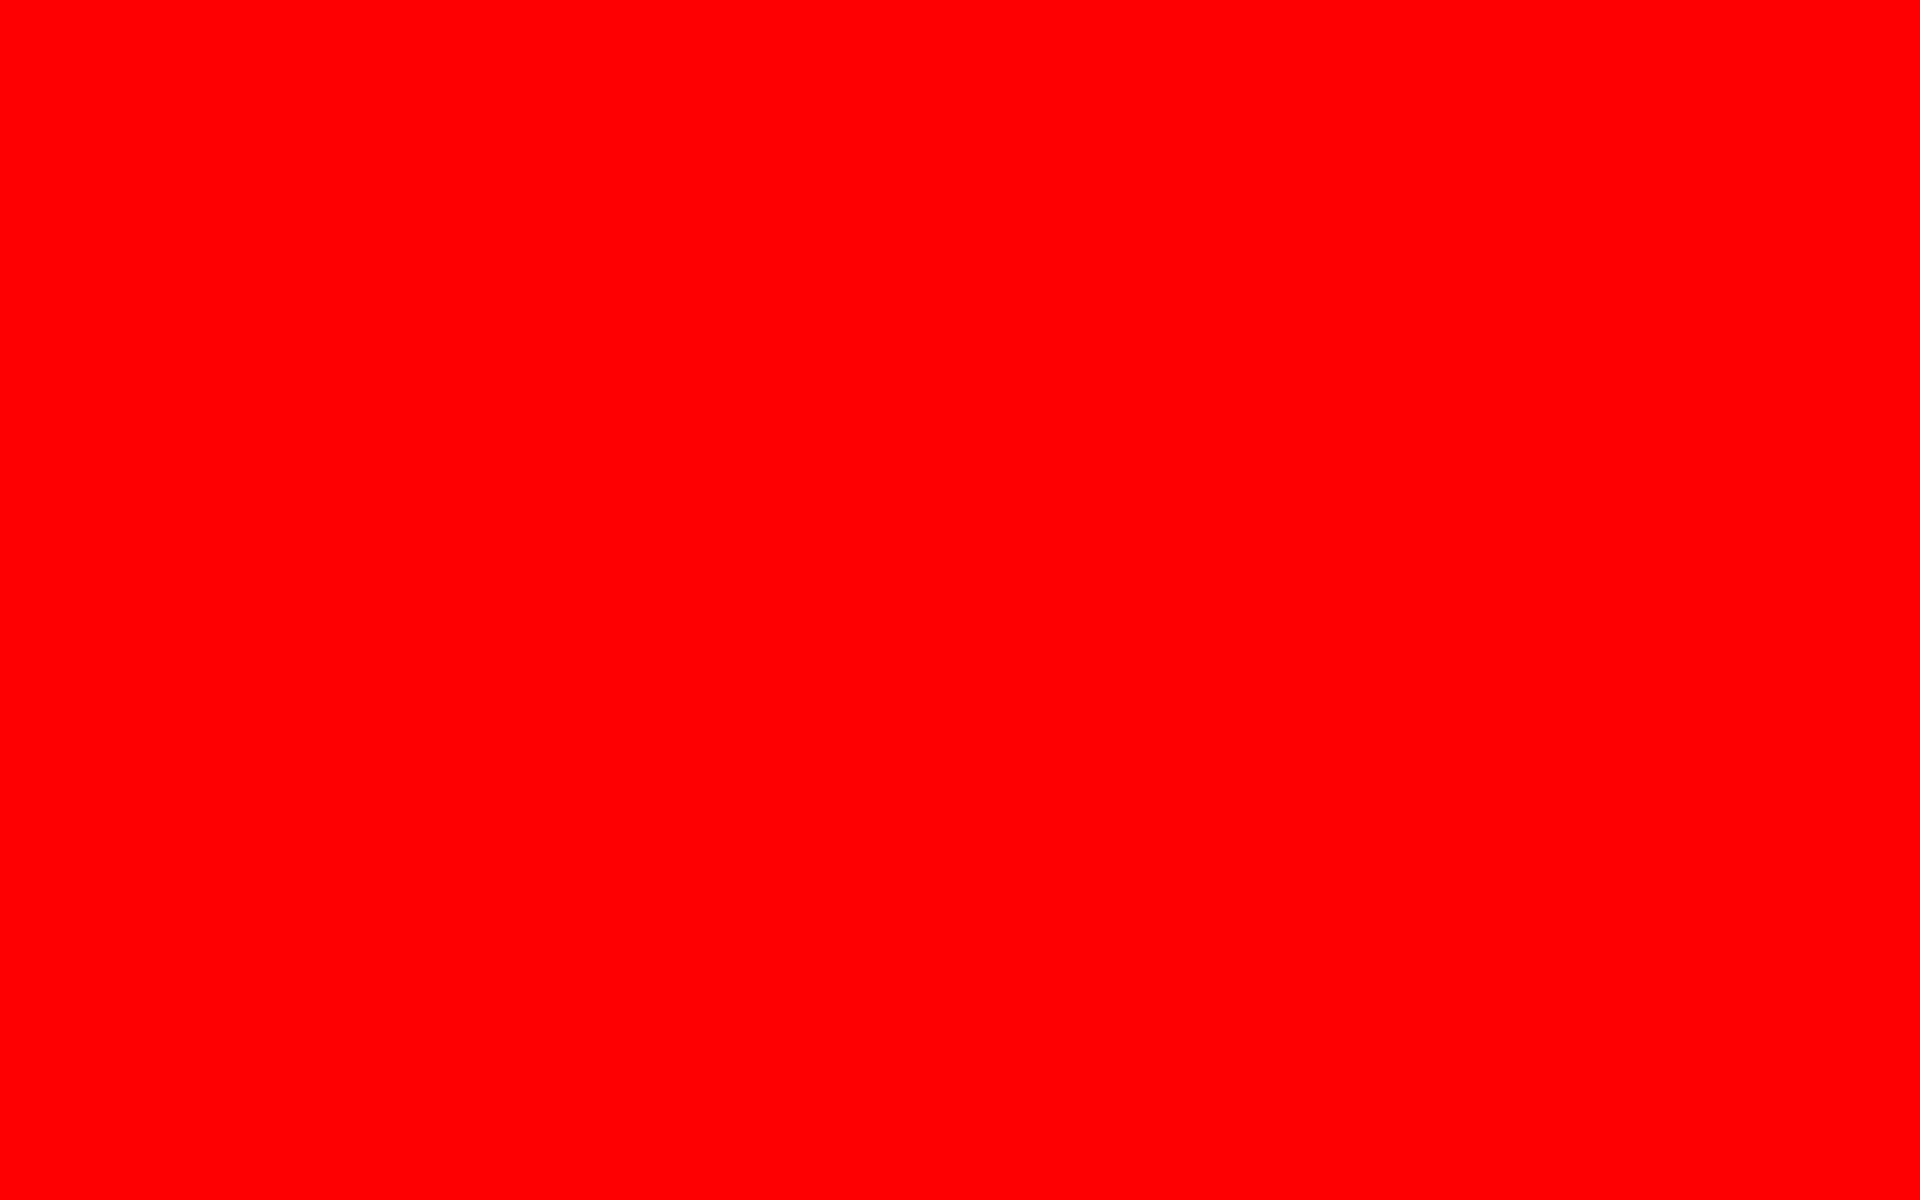 1920x1200 Red Solid Color Background